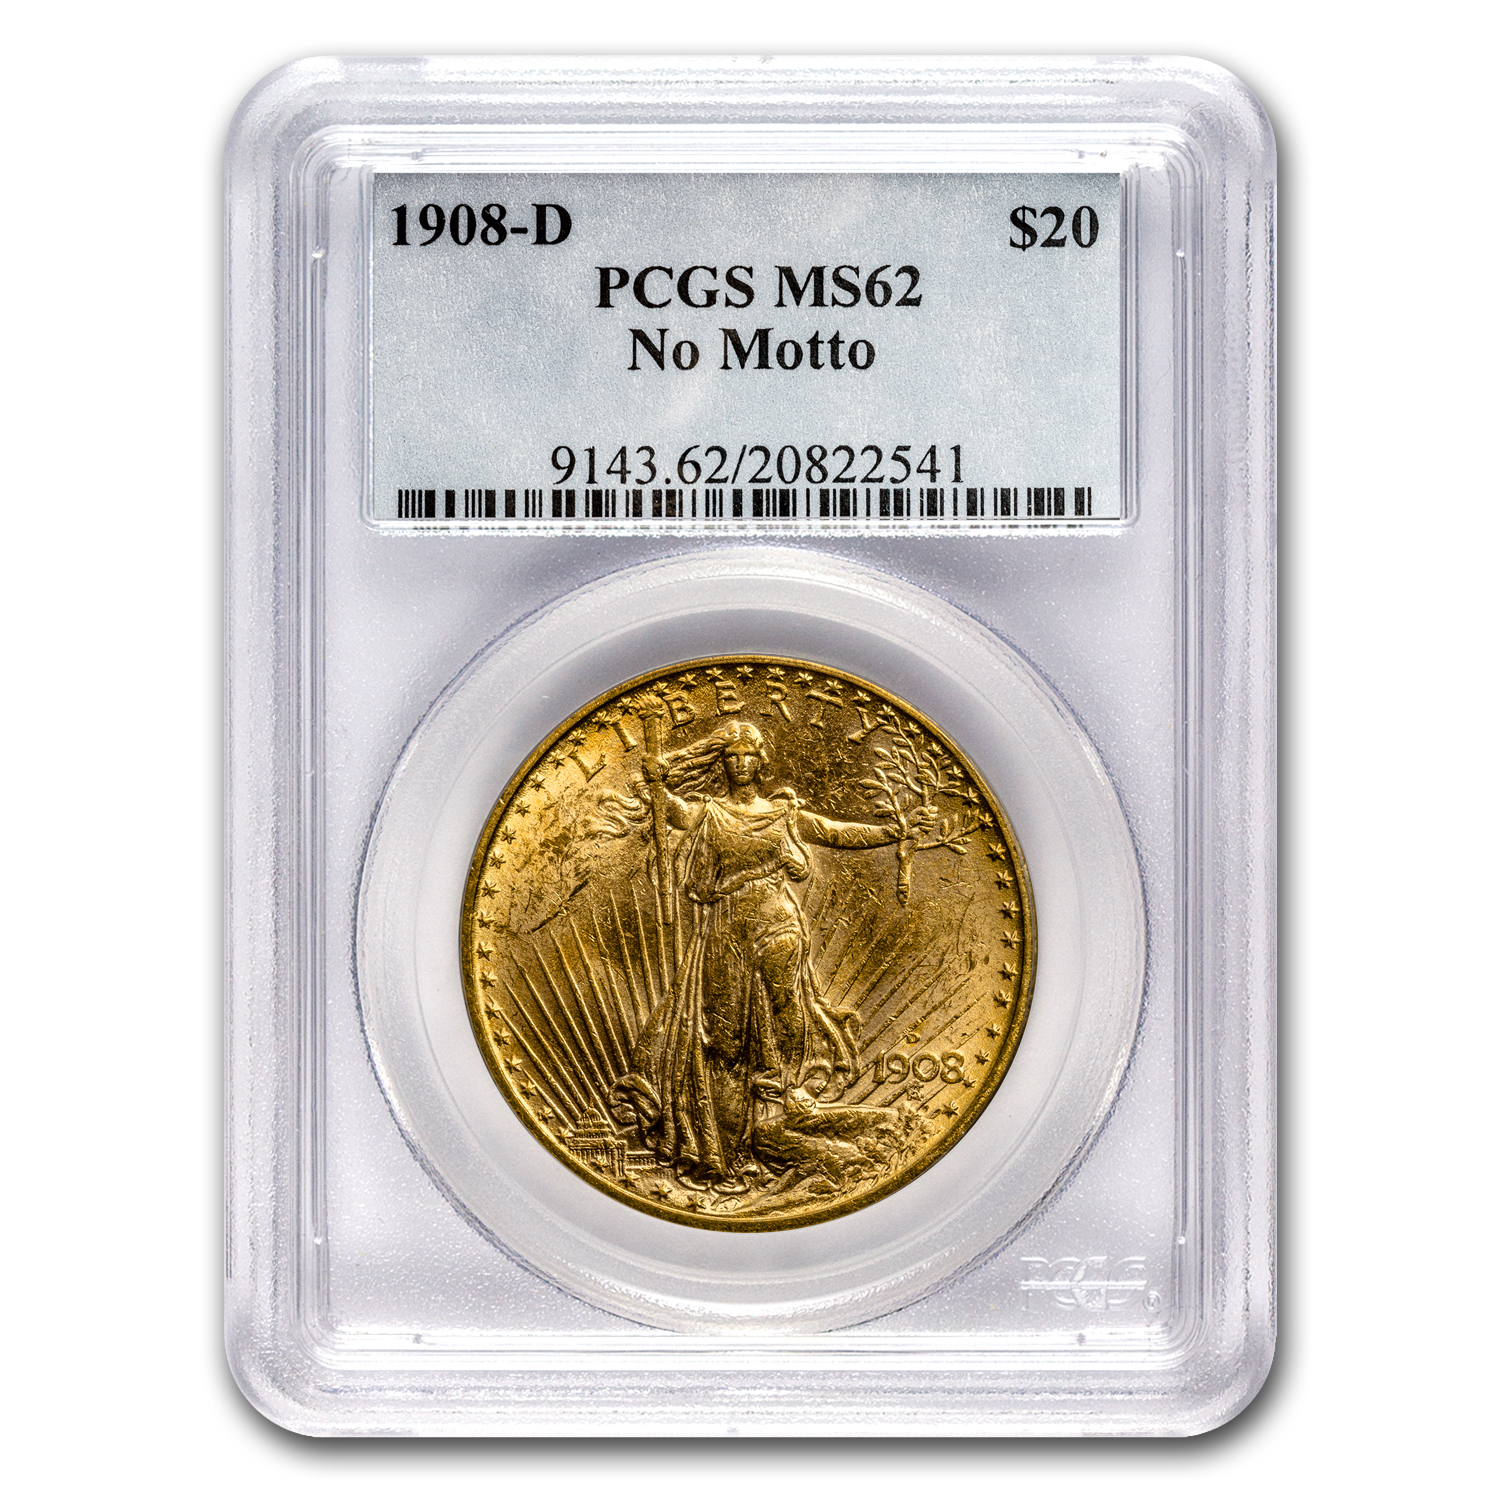 1908-D $20 Saint-Gaudens Gold No Motto MS-62 PCGS